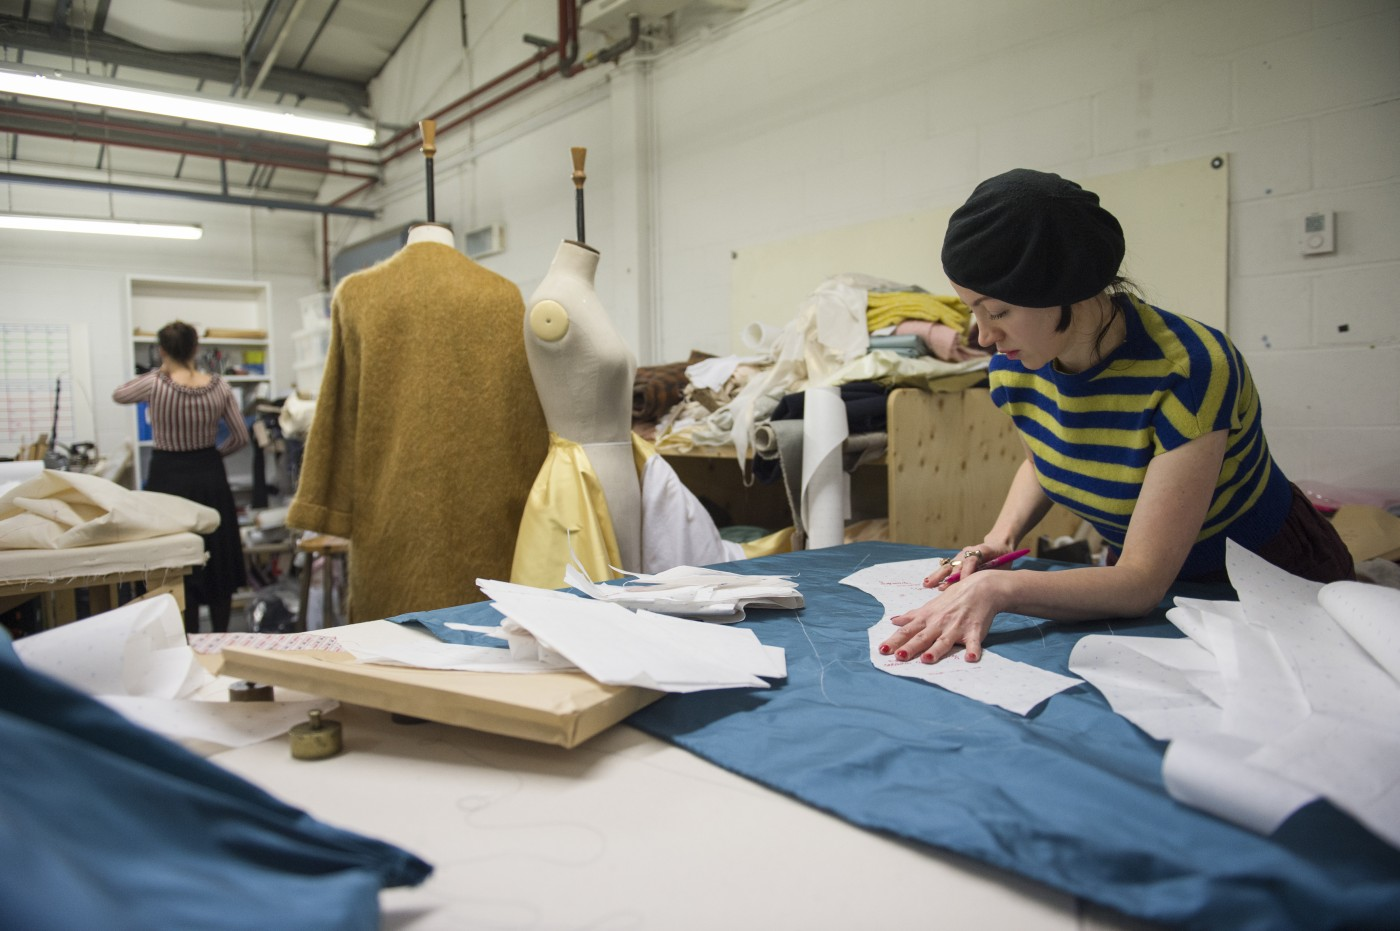 Inside the busy studio where the costumes are created.